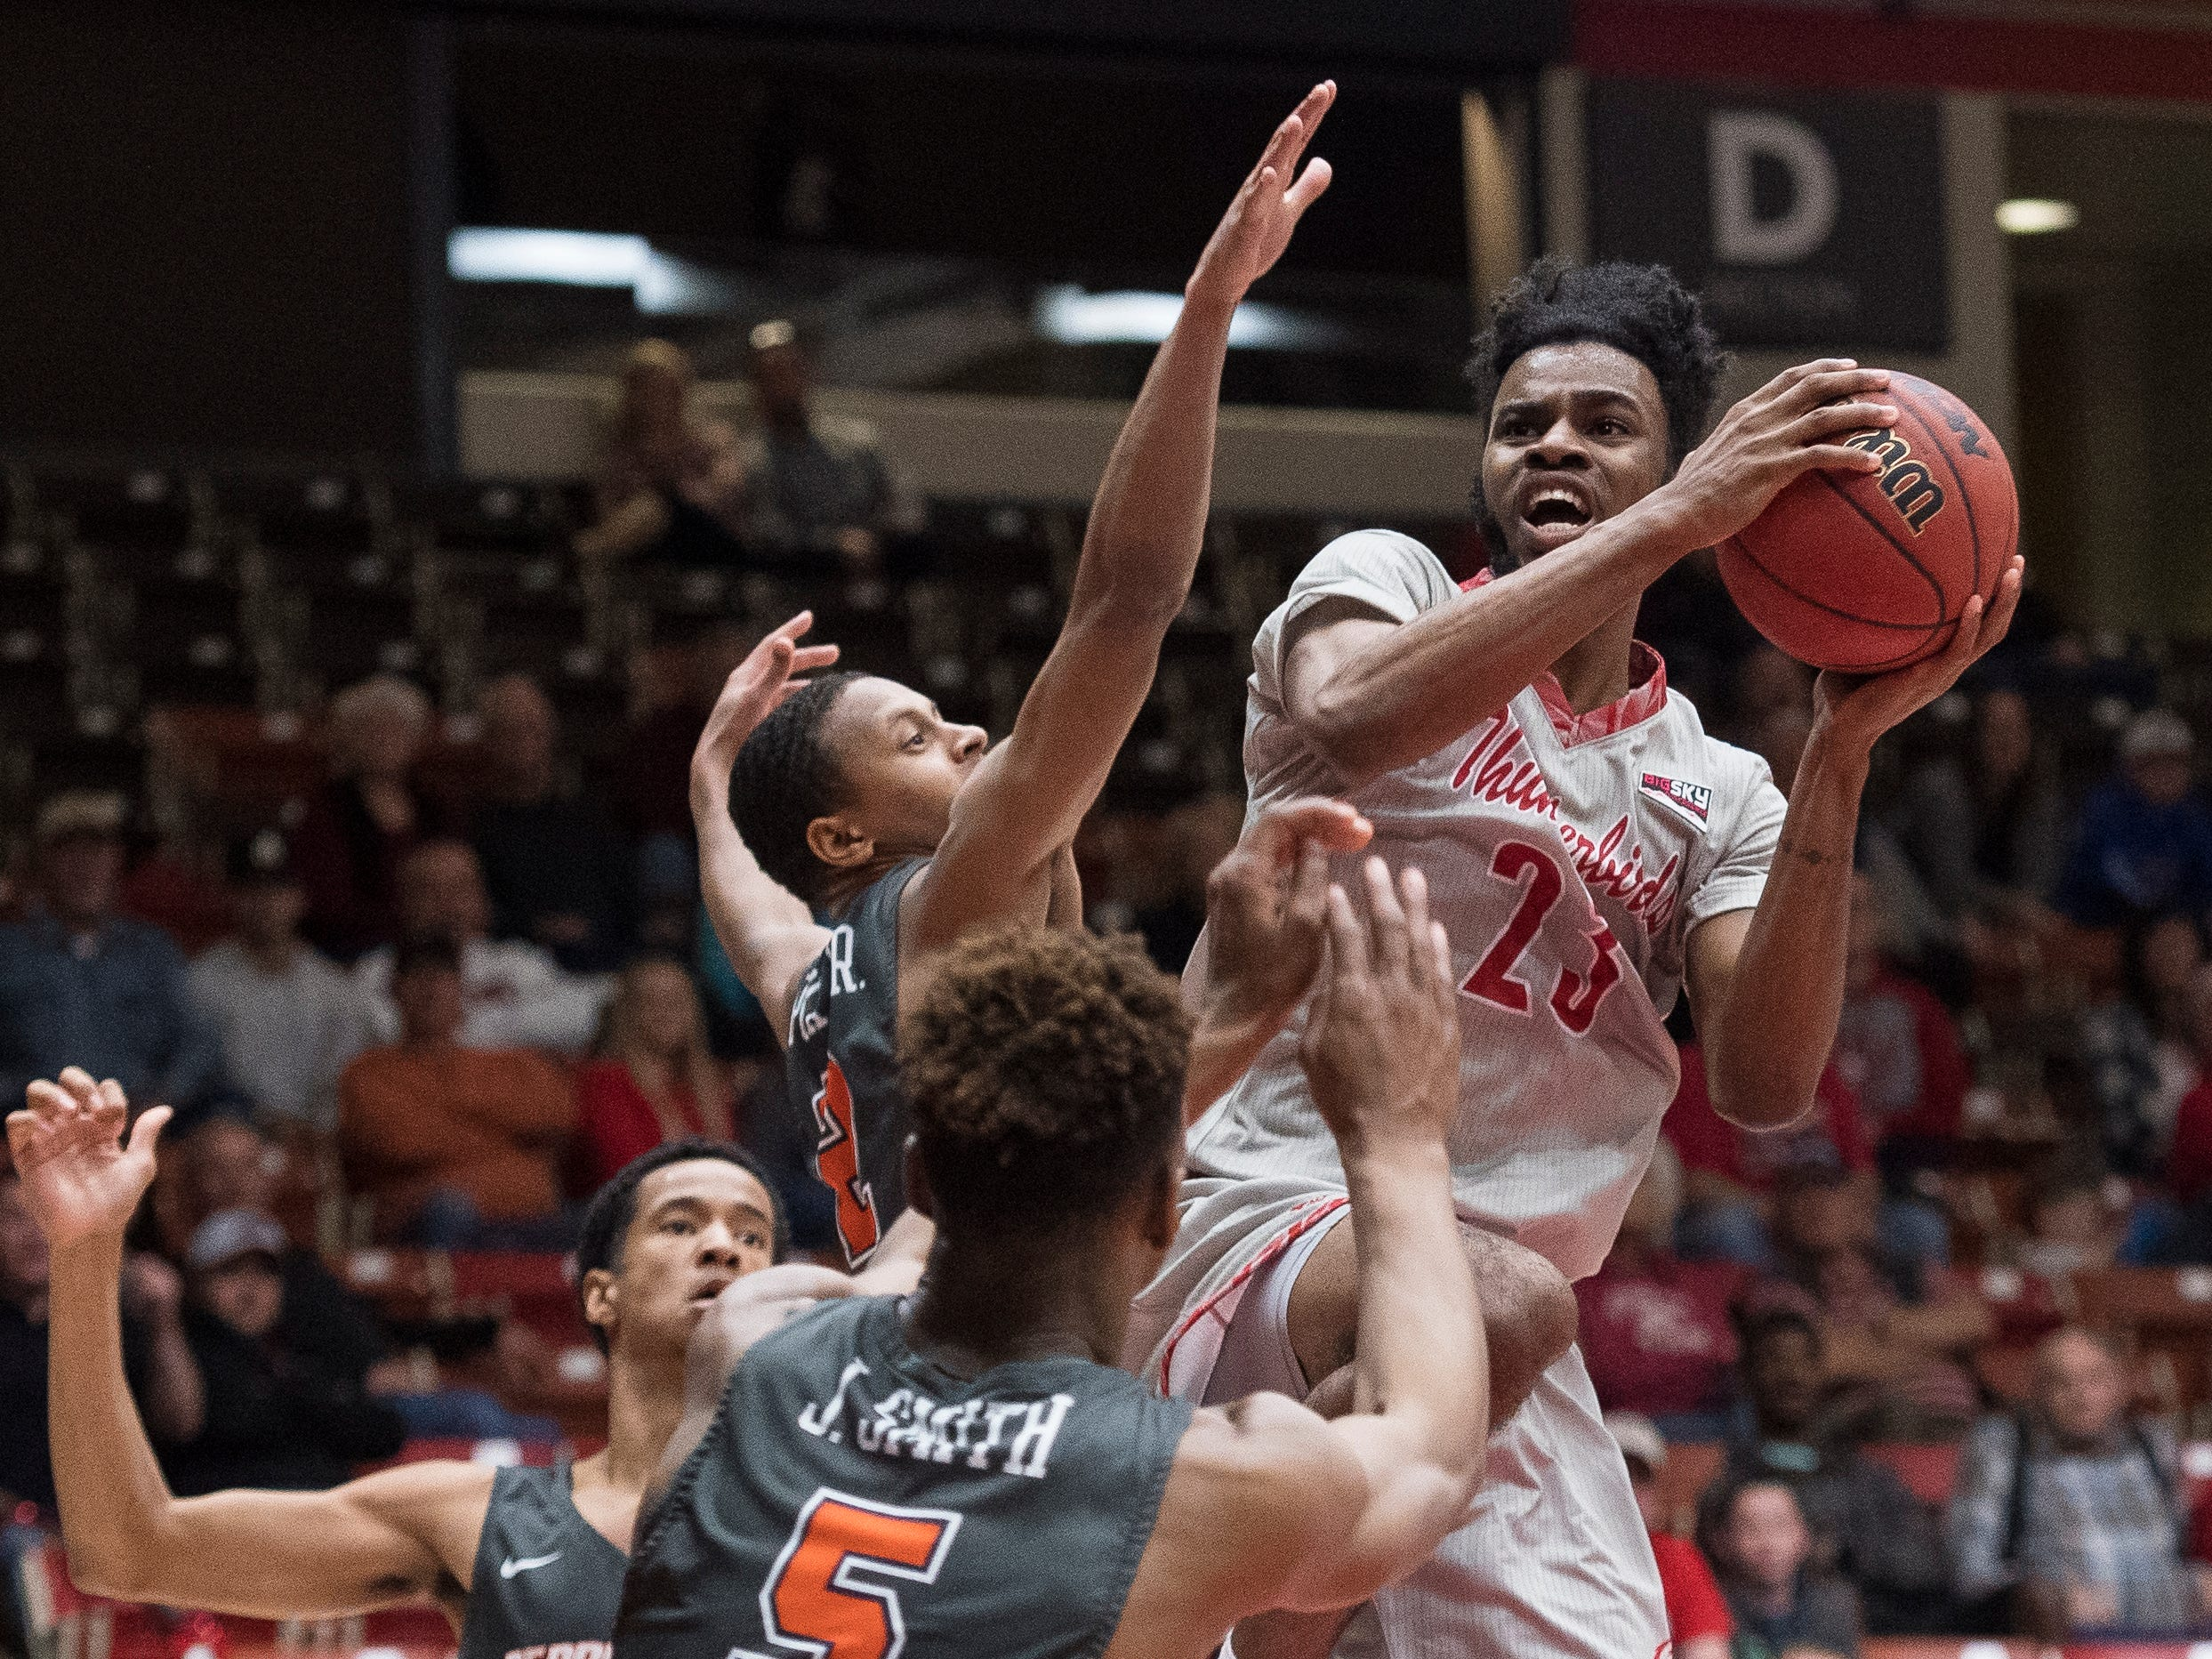 Southern Utah University junior Cameron Oluyitan (23) fights for a basket against Pepperdine University in the America First Event Center Saturday, December 15, 2018. SUU won in overtime, 78-69.